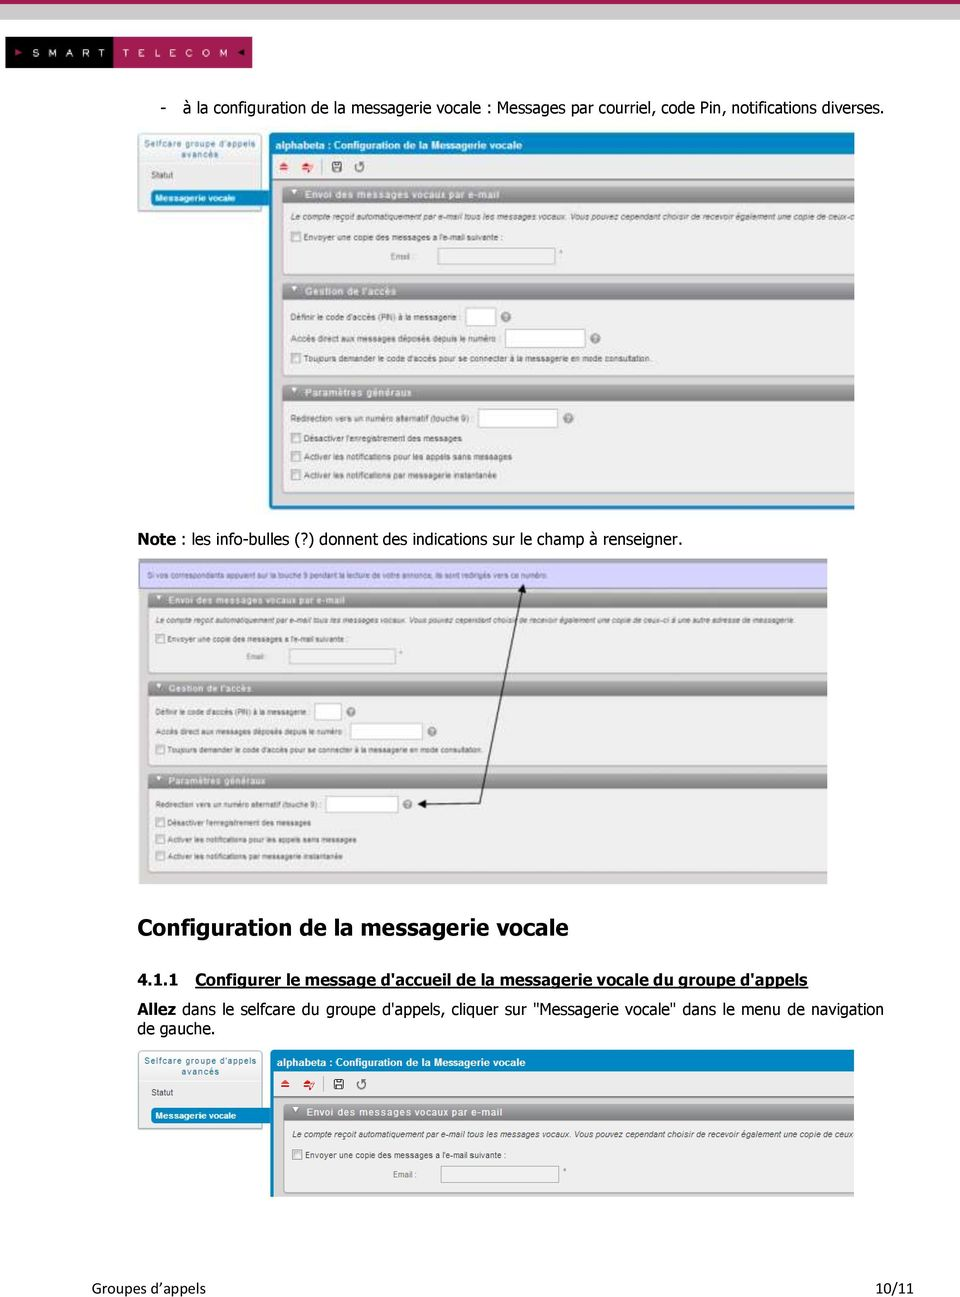 Configuration de la messagerie vocale 4.1.